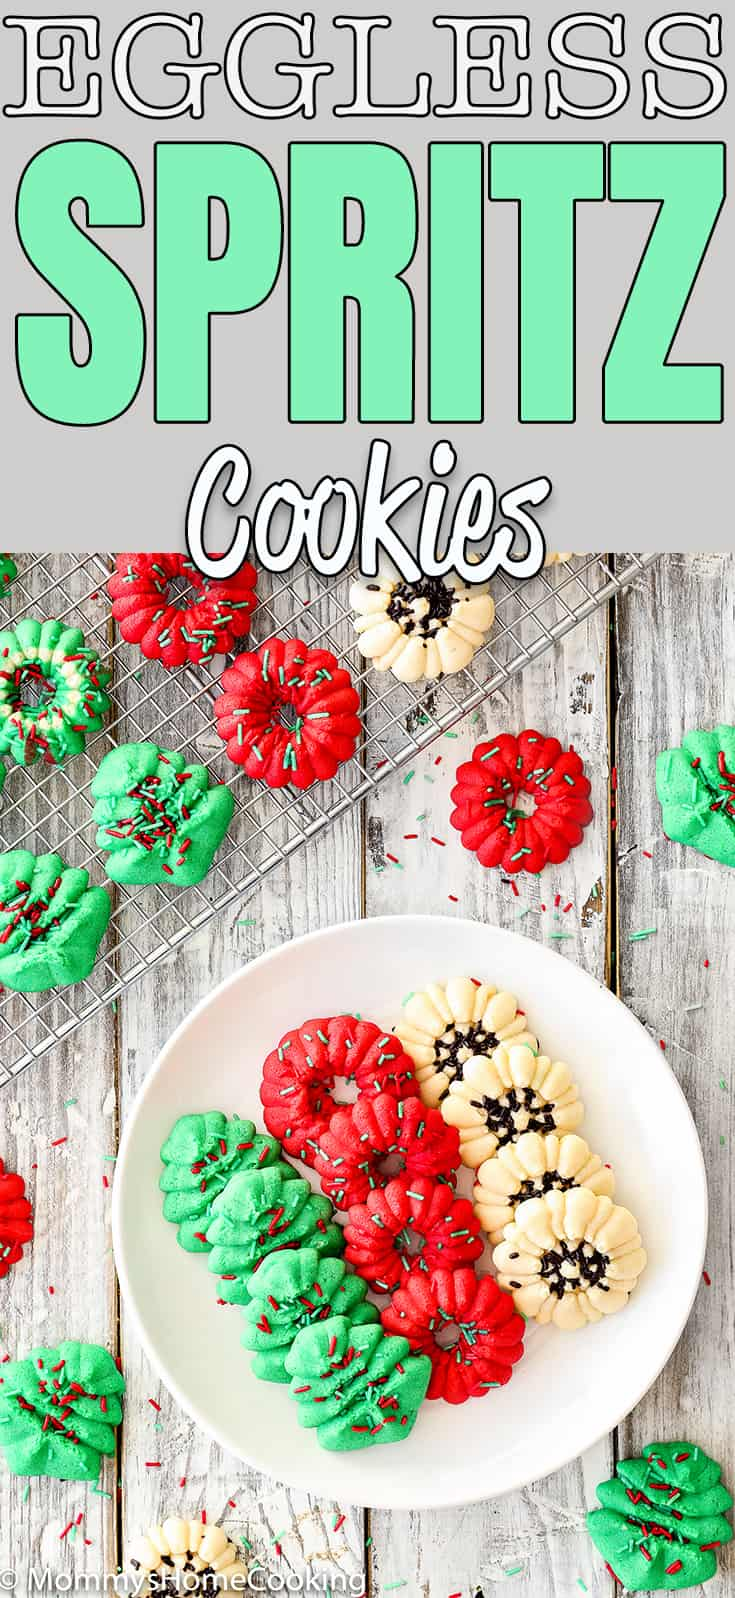 These Easy Eggless Spritz Cookies are tender, light, buttery and totally delicious. Easy and quick to make; no cookie dough chilling required. These egg-free cookies will make a great dessert contribution to any holiday party. #recipe #egglessbaking #eggfree #cookies #spritz #holidays